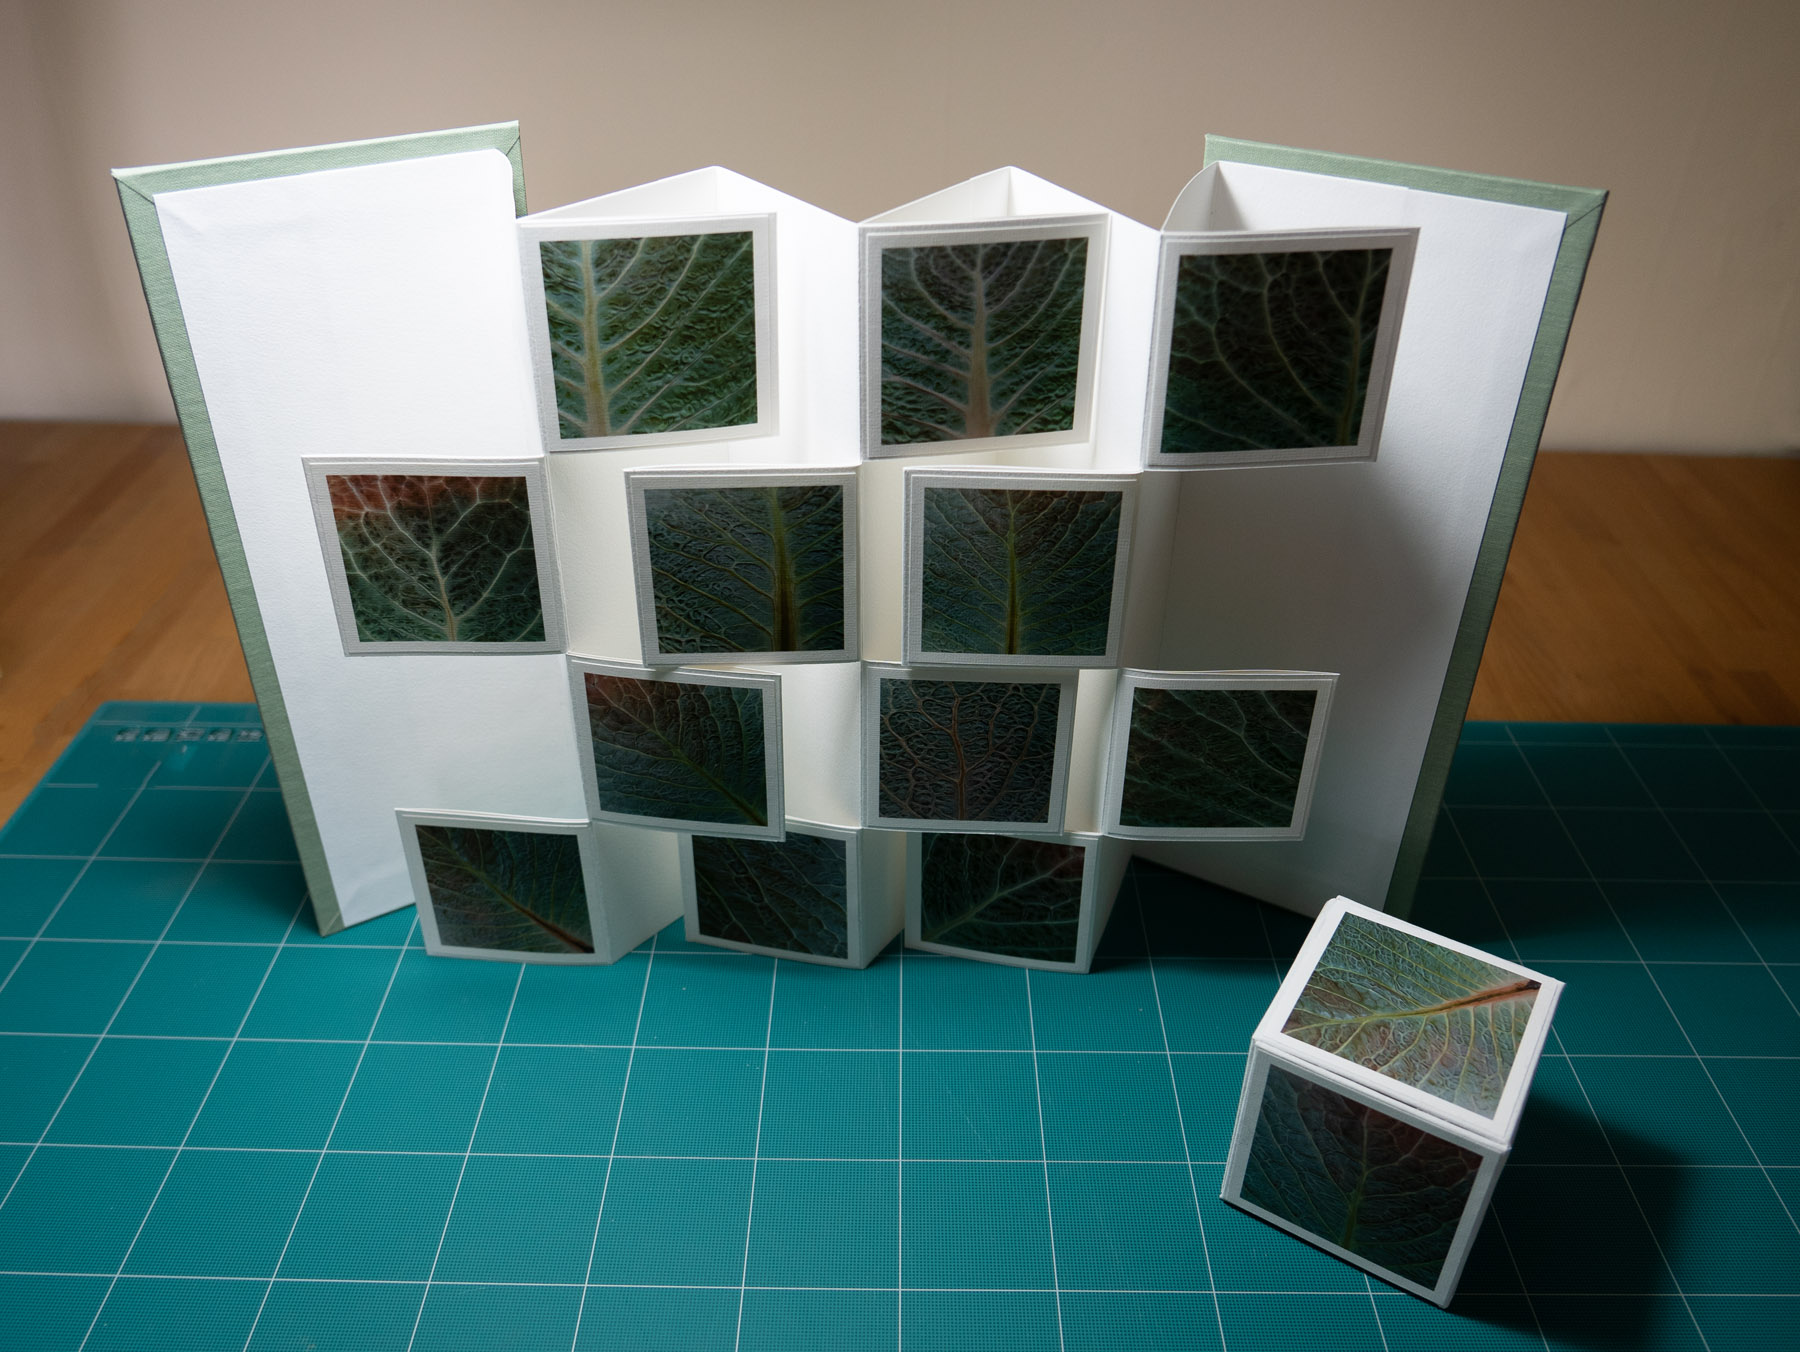 Savoy Leaves book extended and photo cube.